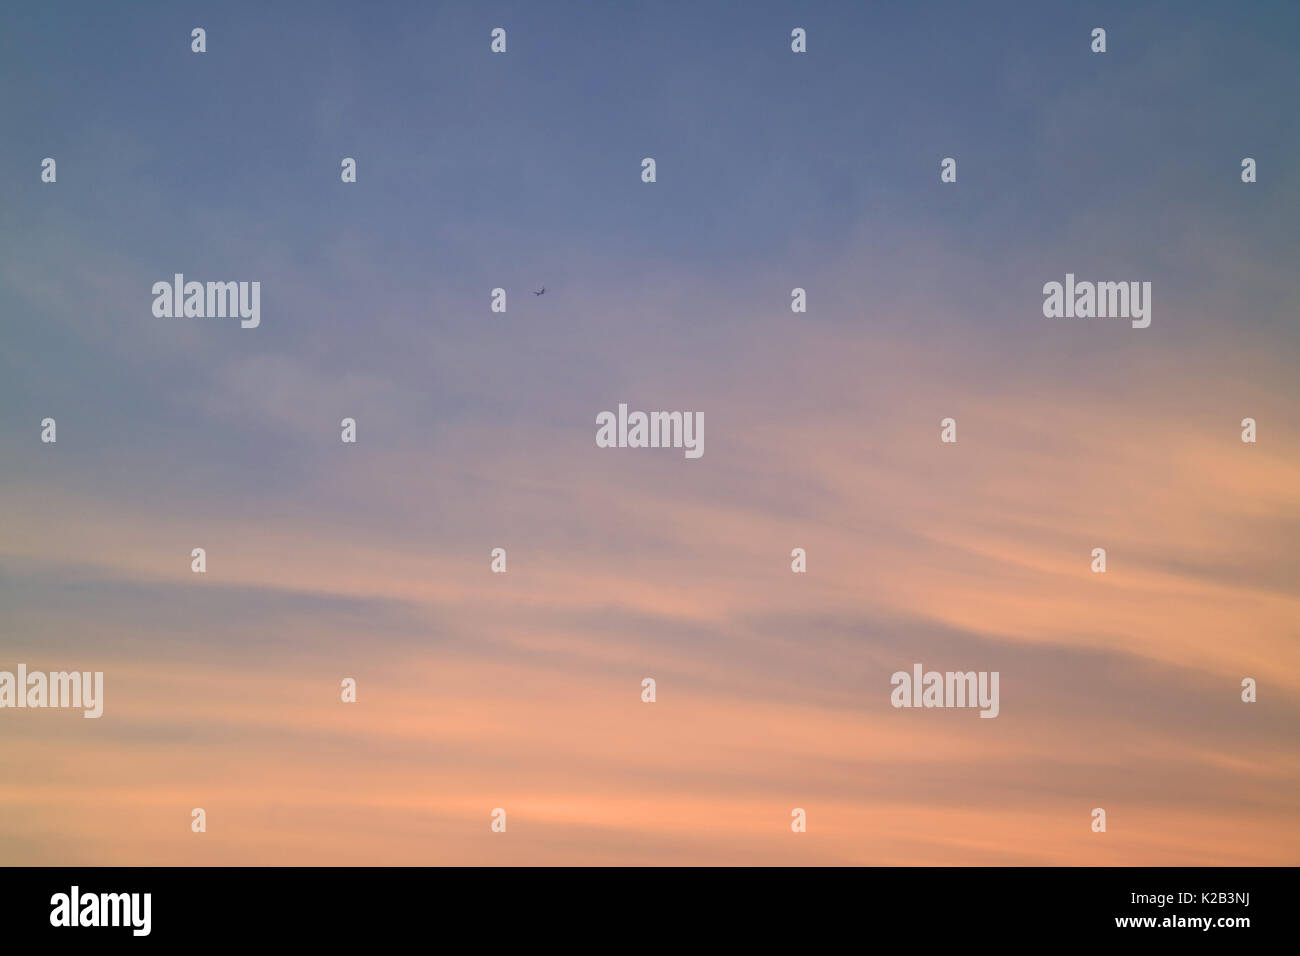 Pastel Orange and Blue Tropical Sunset Sky with the Airplane, Bangkok, Thailand - Stock Image